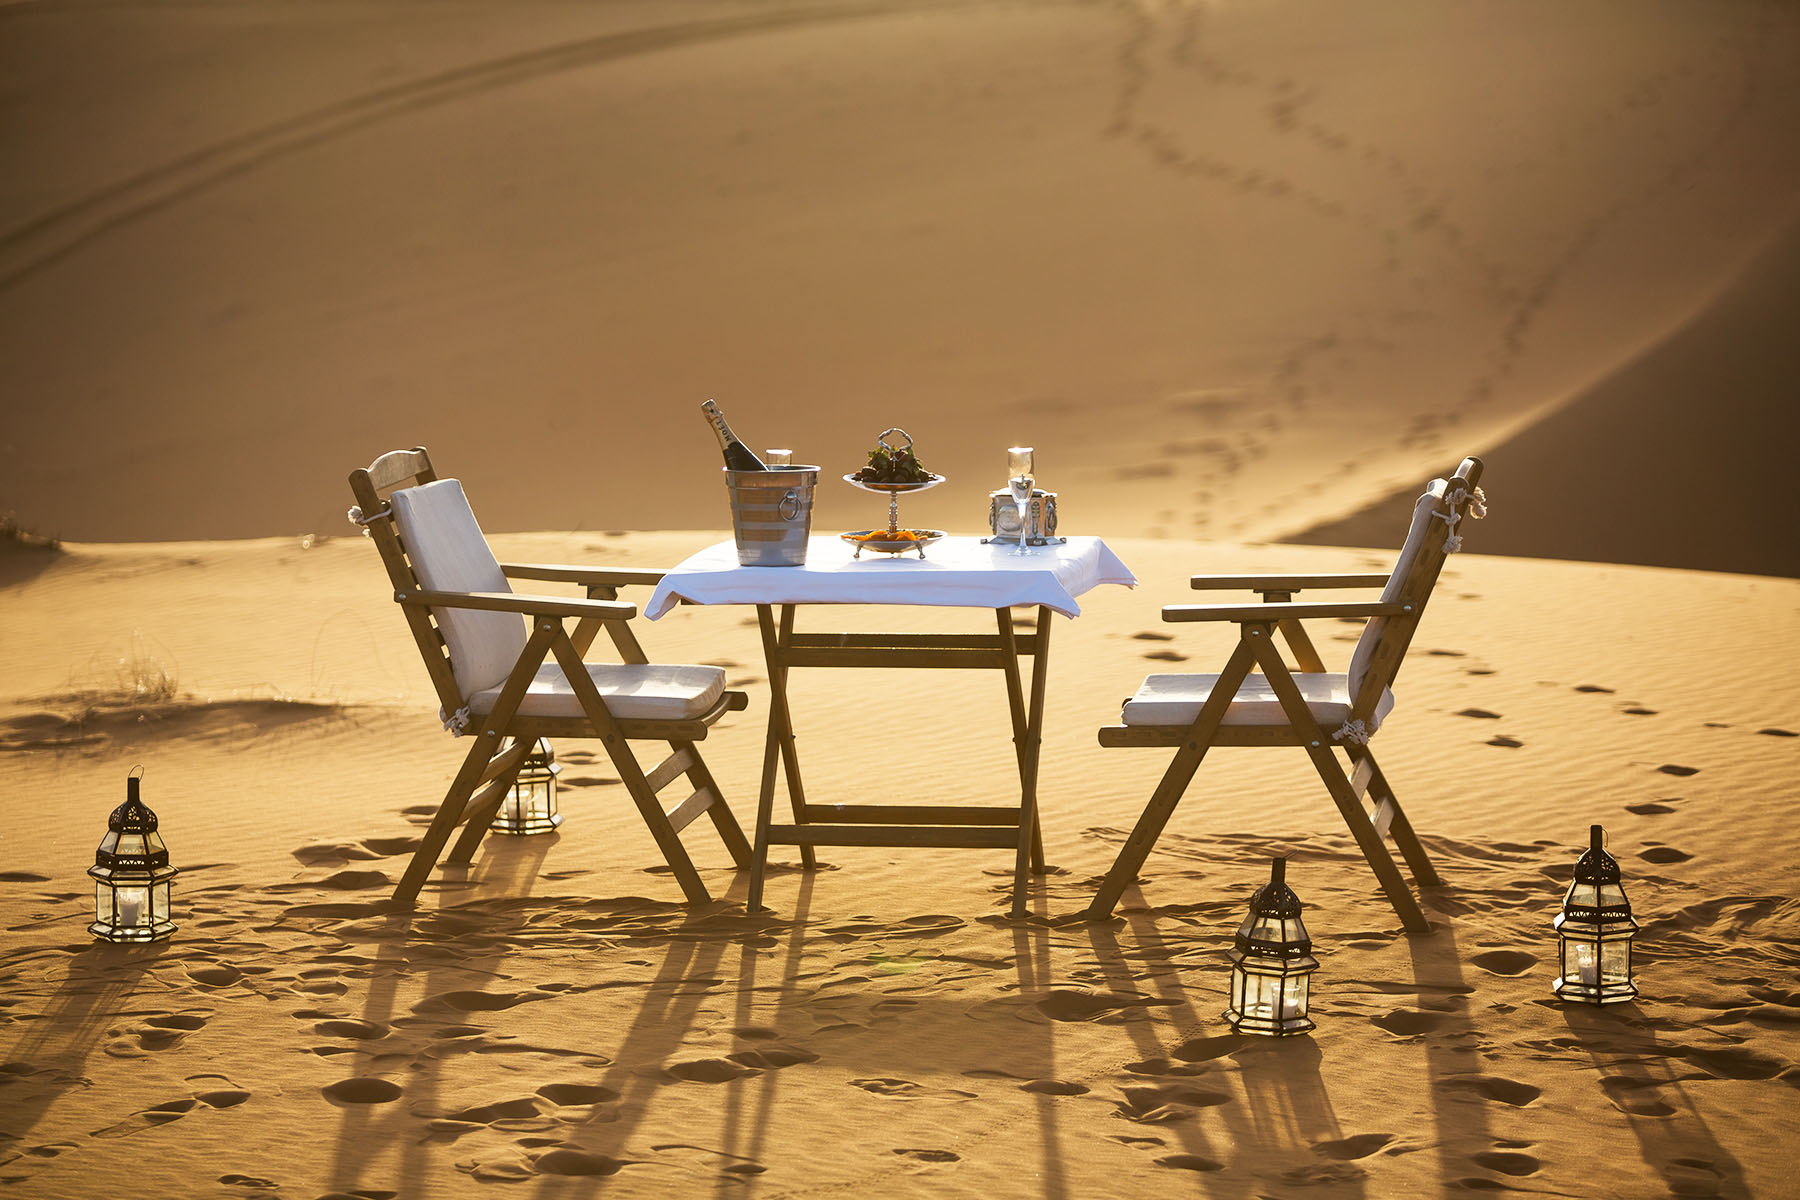 Long week end in the red dunes